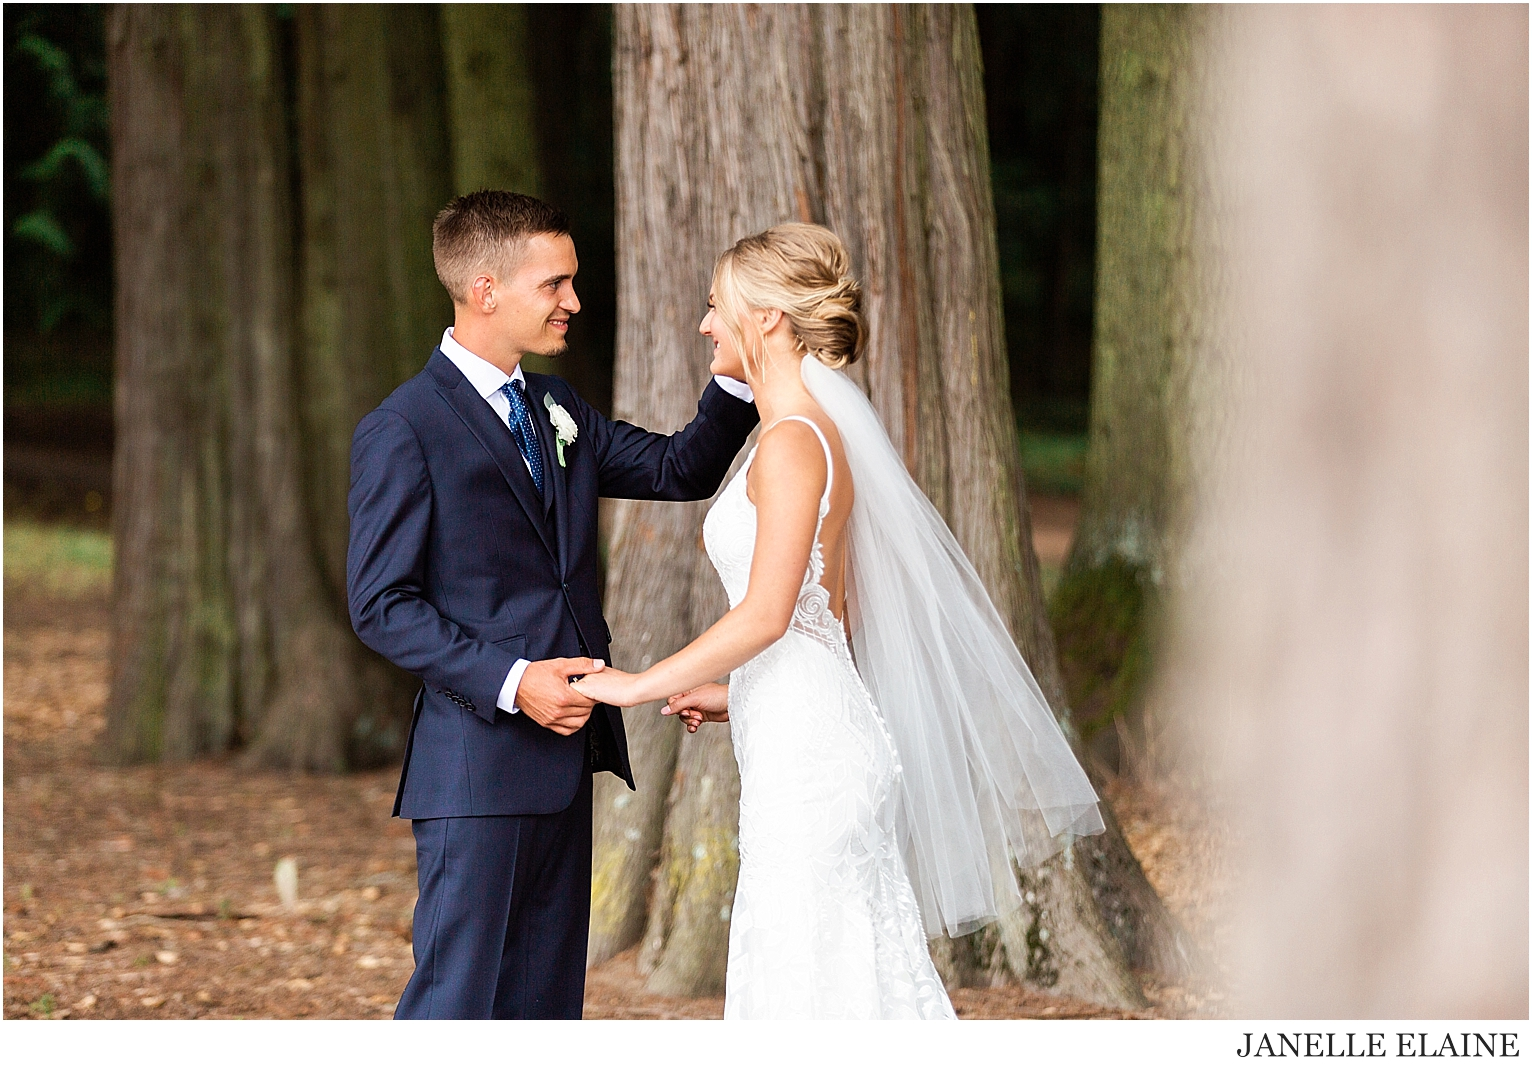 Tricia and Nathan Goddard Wedding-First Look and Portraits-Janelle Elaine Photography-11a.jpg